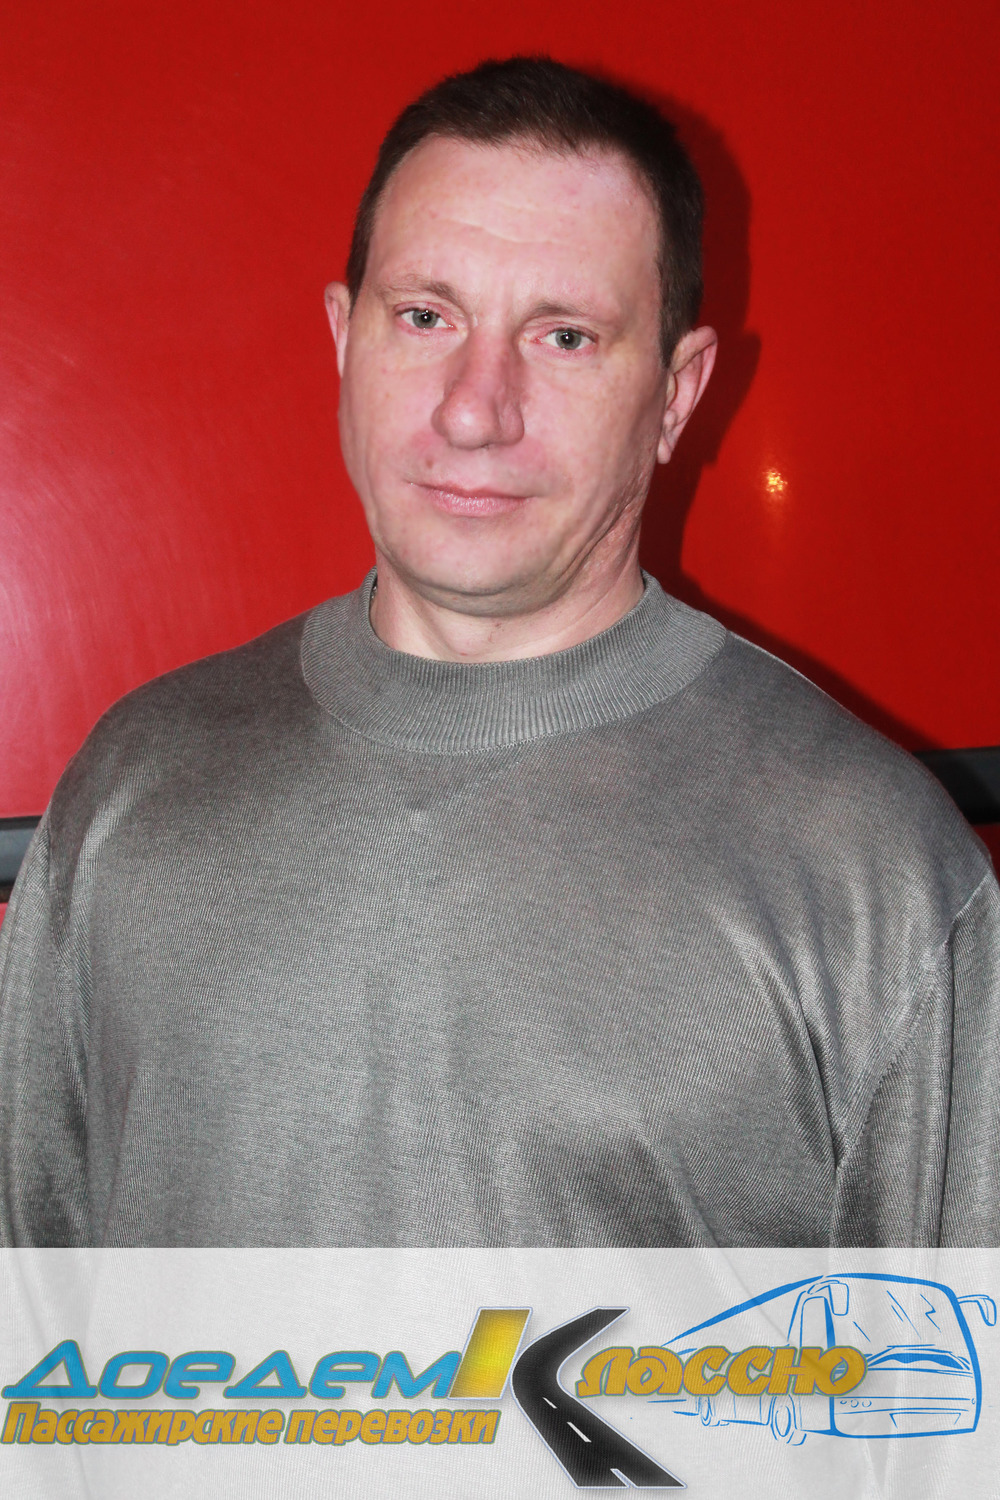 "<span style=""font-weight: bold; font-style: italic;"">Сергей</span>"